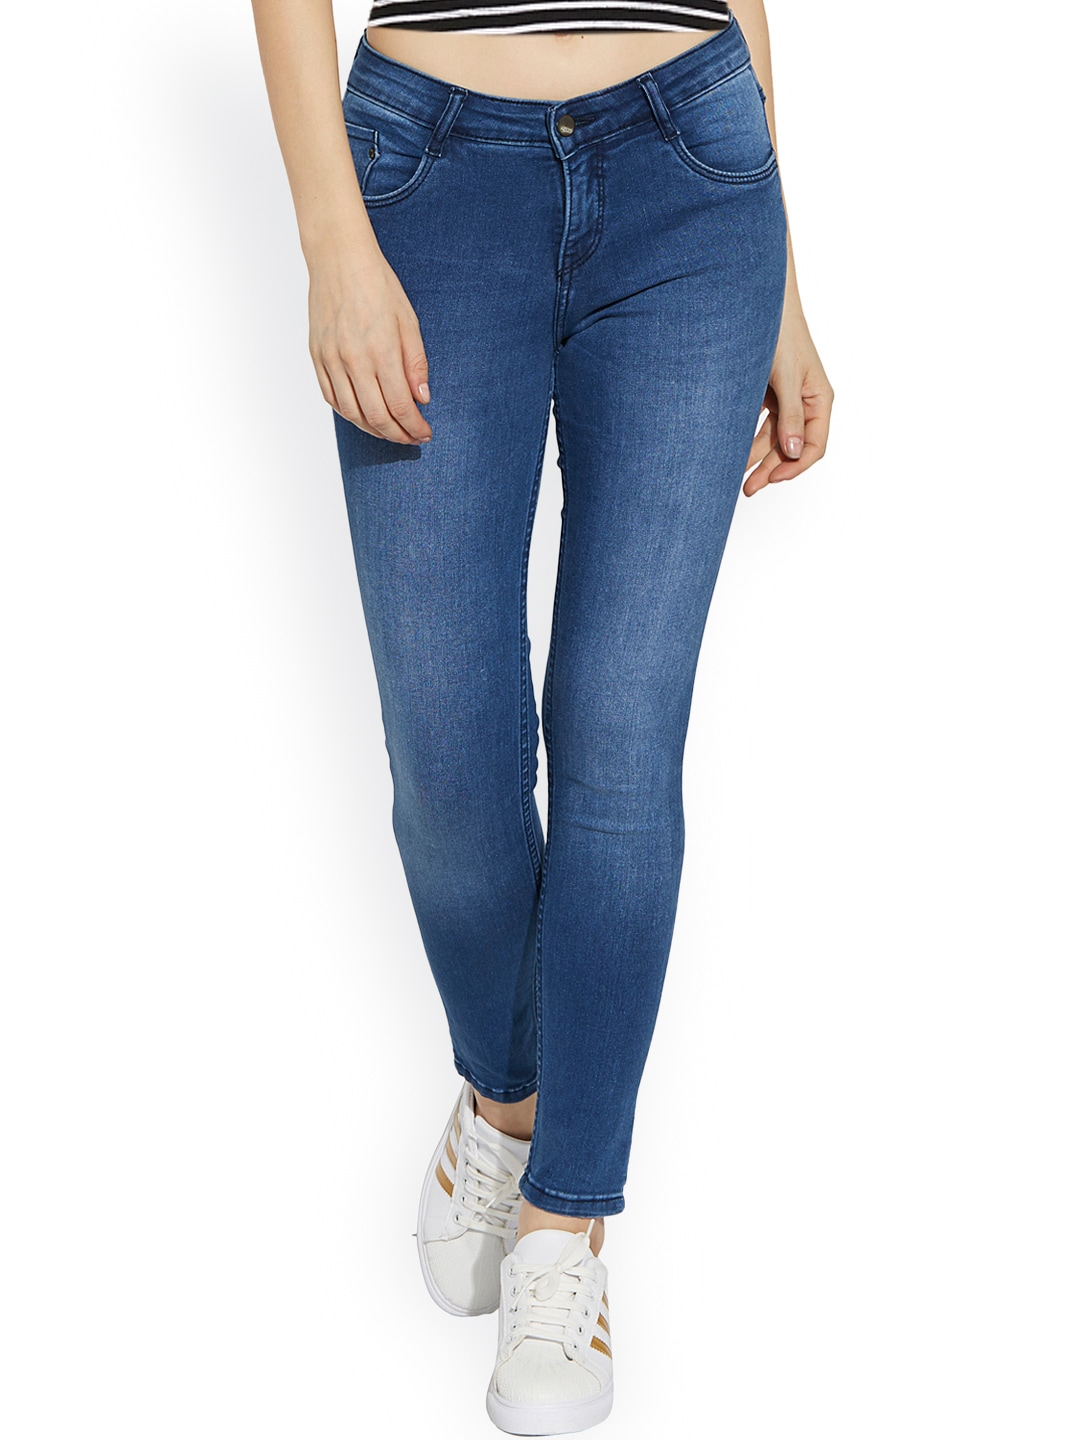 Kraus Jeans Women Blue Skinny Fit Mid-Rise Clean Look Jeans image